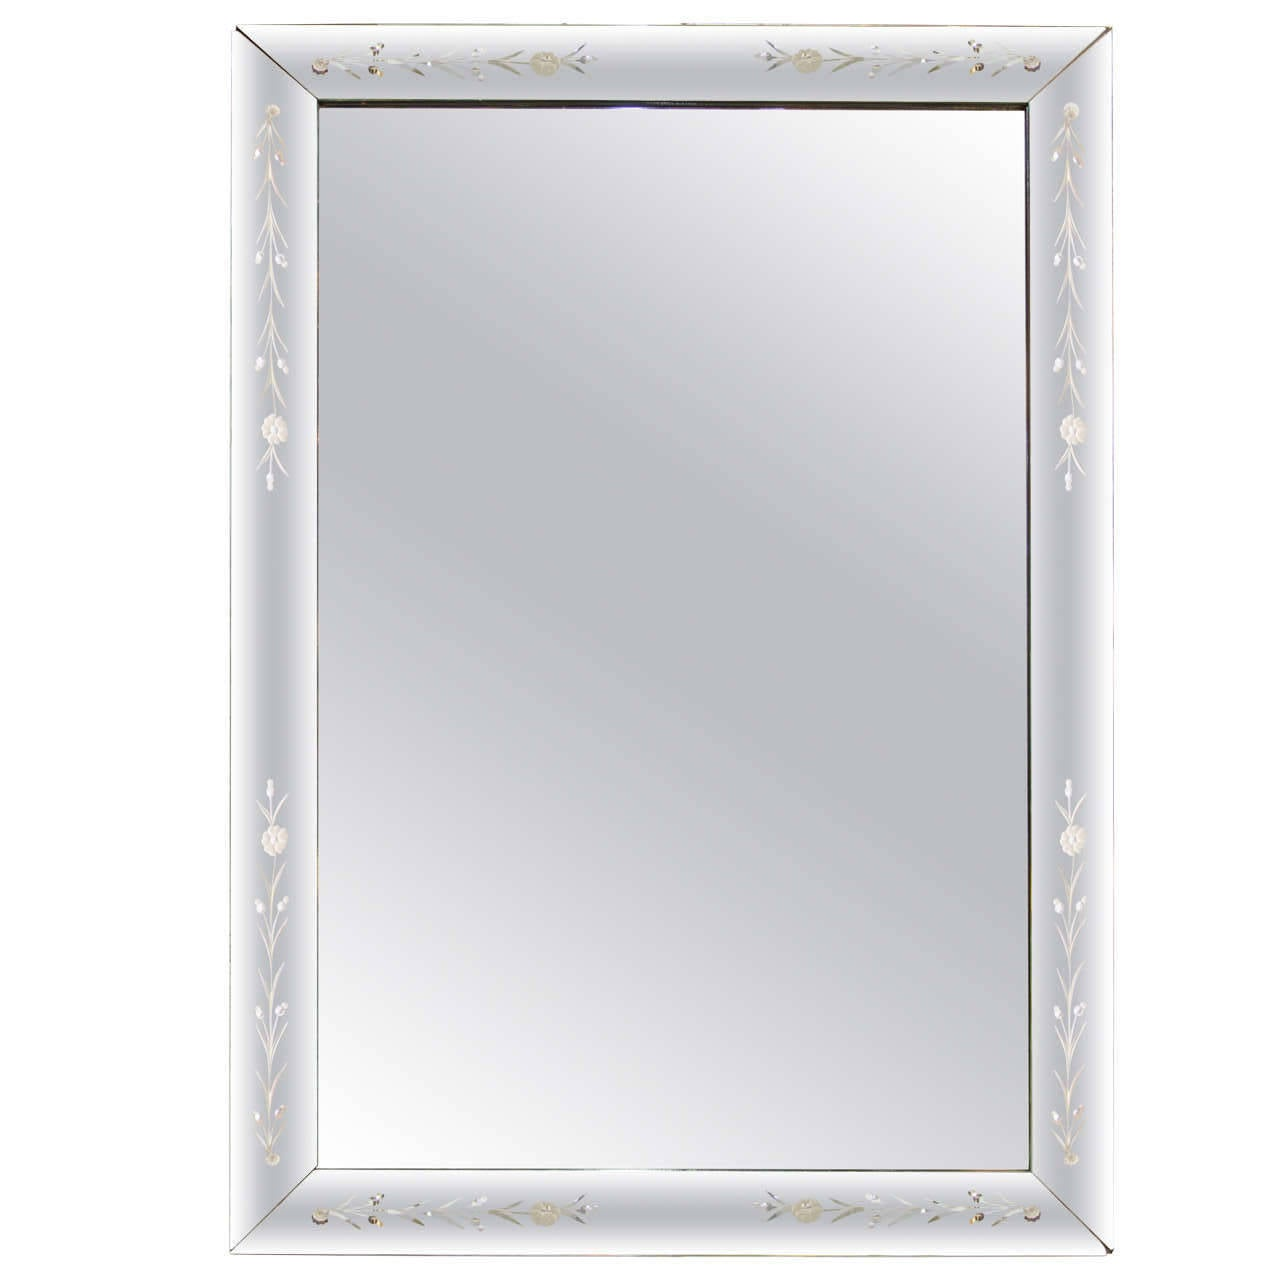 A gorgeous, substantial, and large rectangular Italian Venetian wall mirror, circa 1940s. Mirror has a straight line beveled mirror frame with etched design - frame is 5